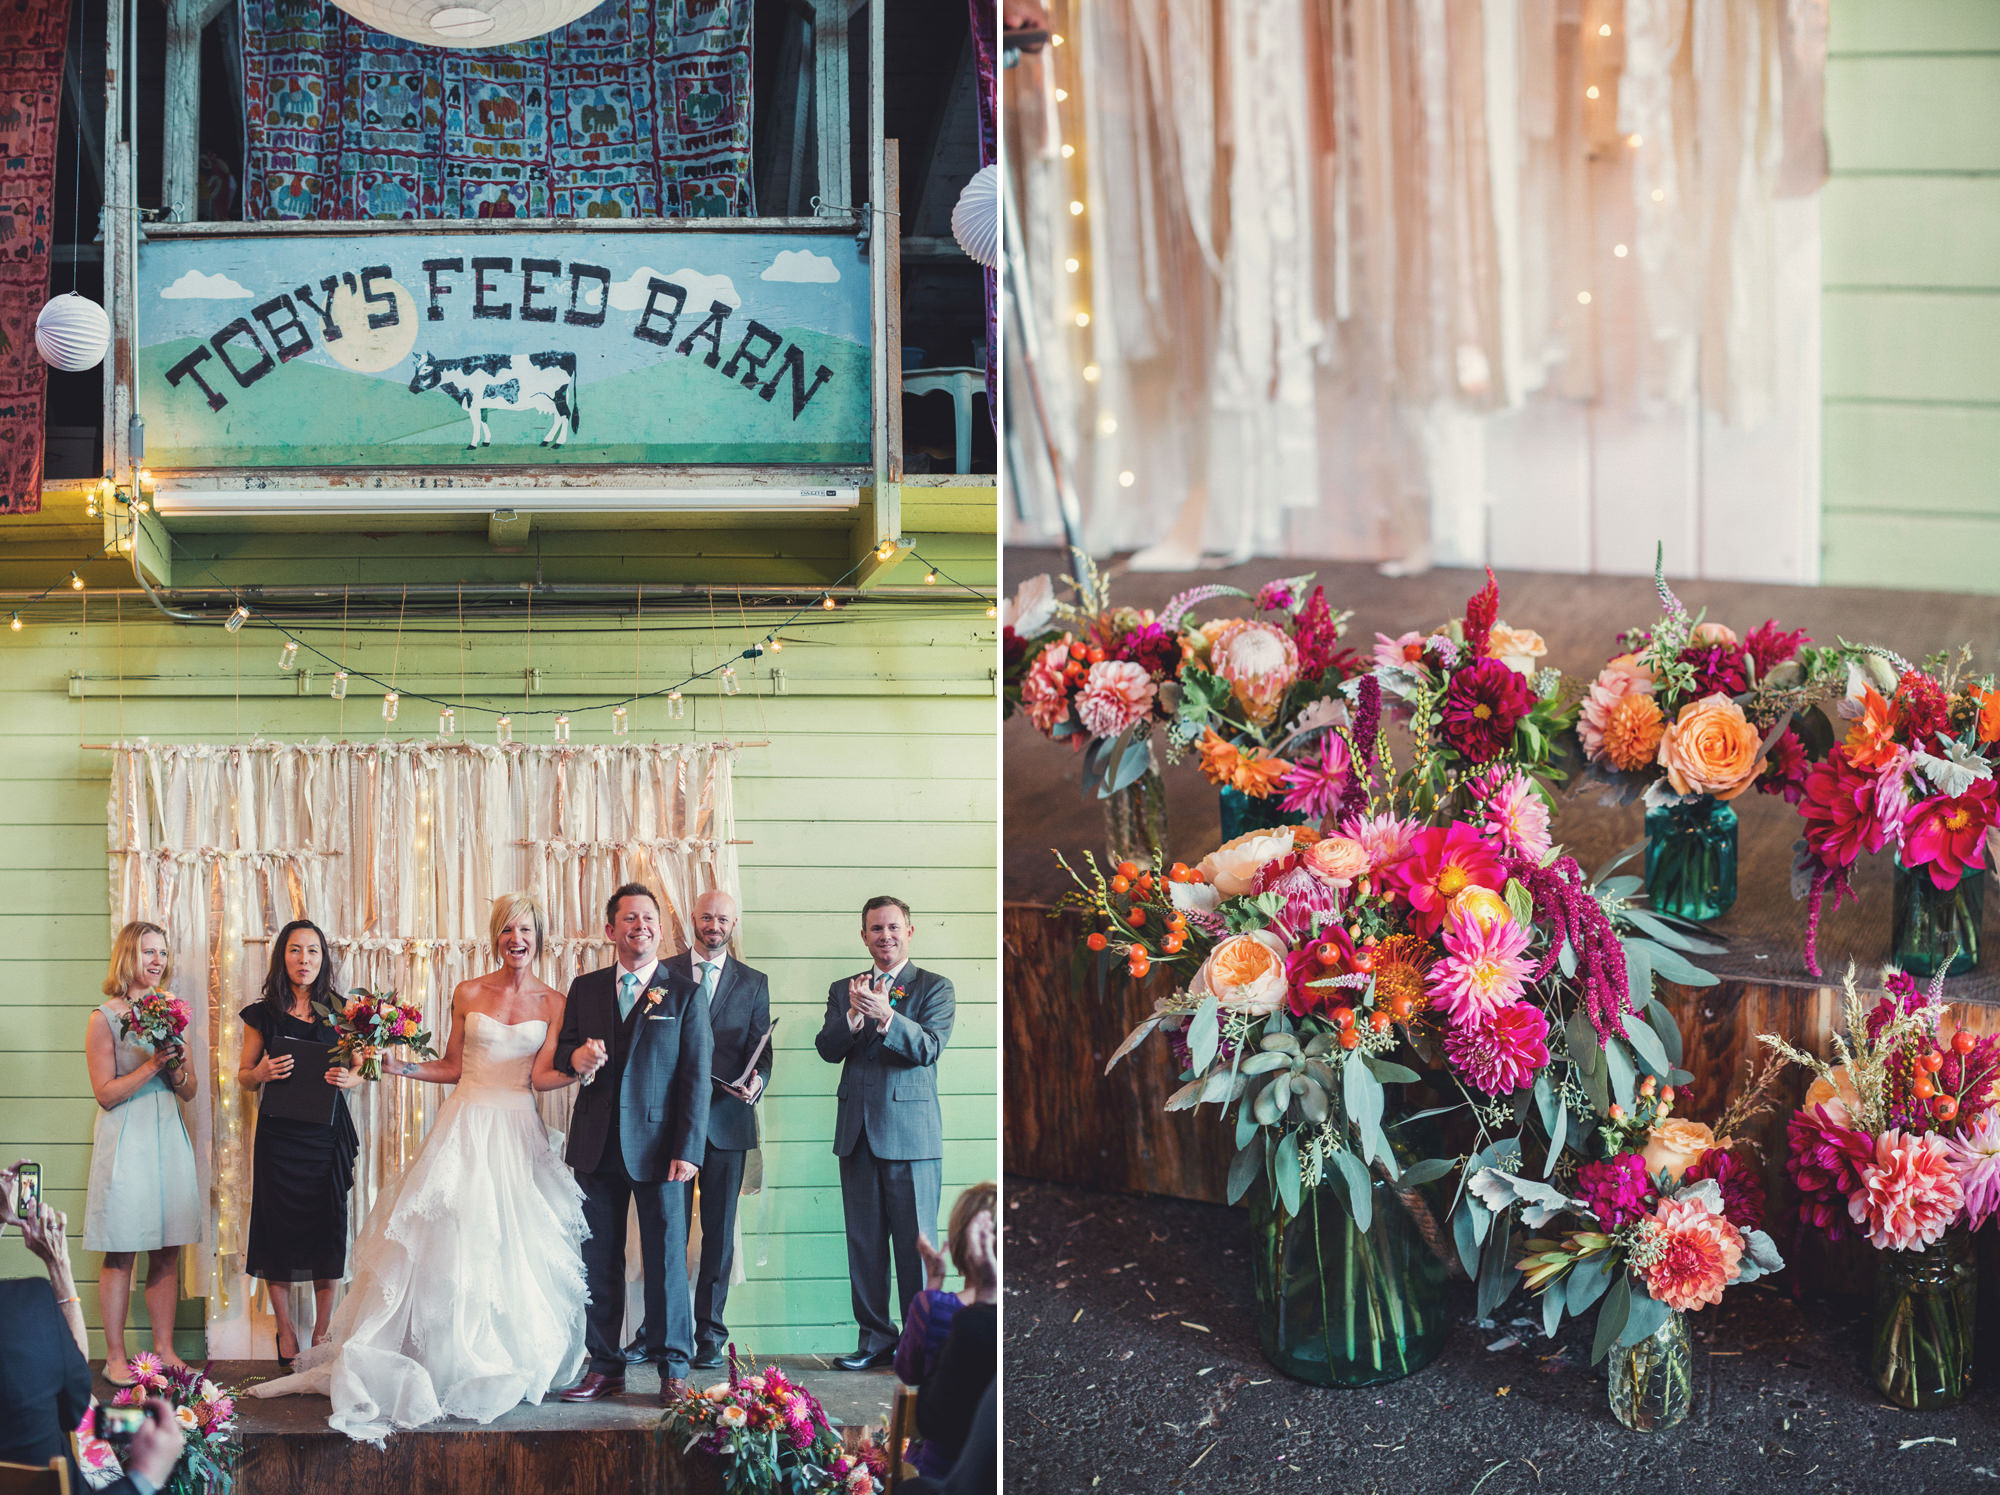 Toby's Feed Barn Wedding ©Anne-Claire Brun 79